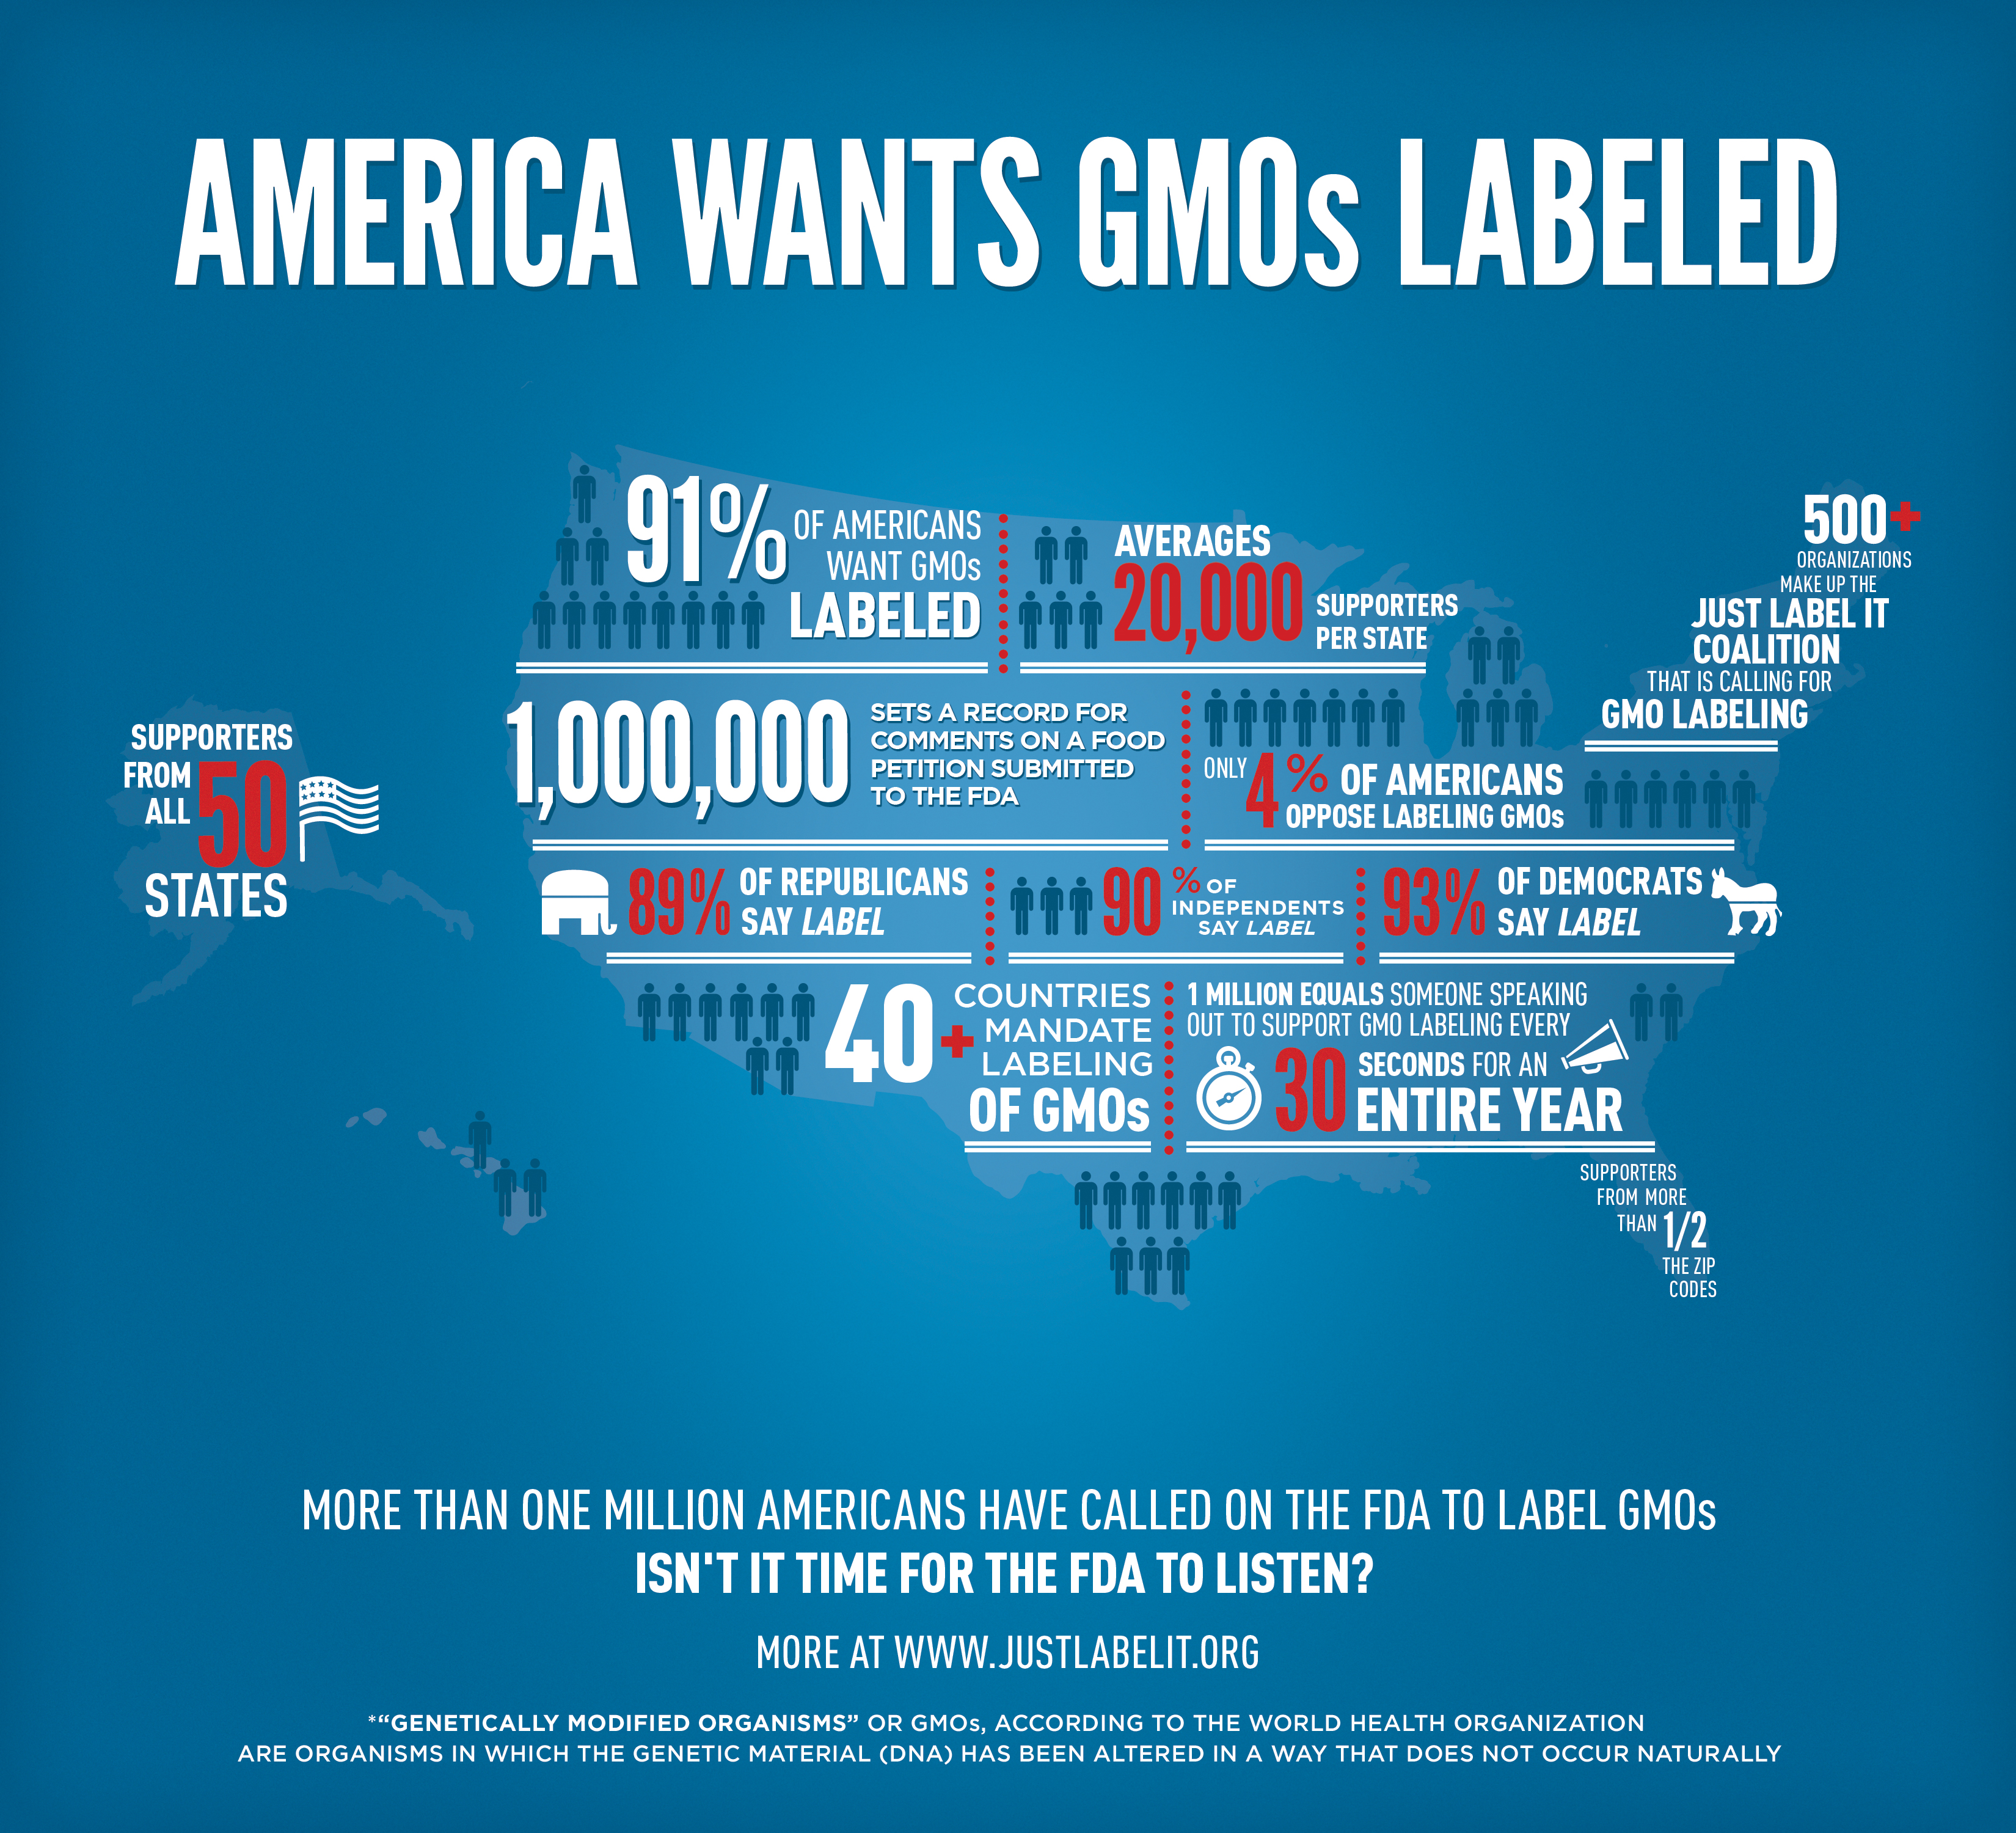 JustlabelitINFOGRAPH